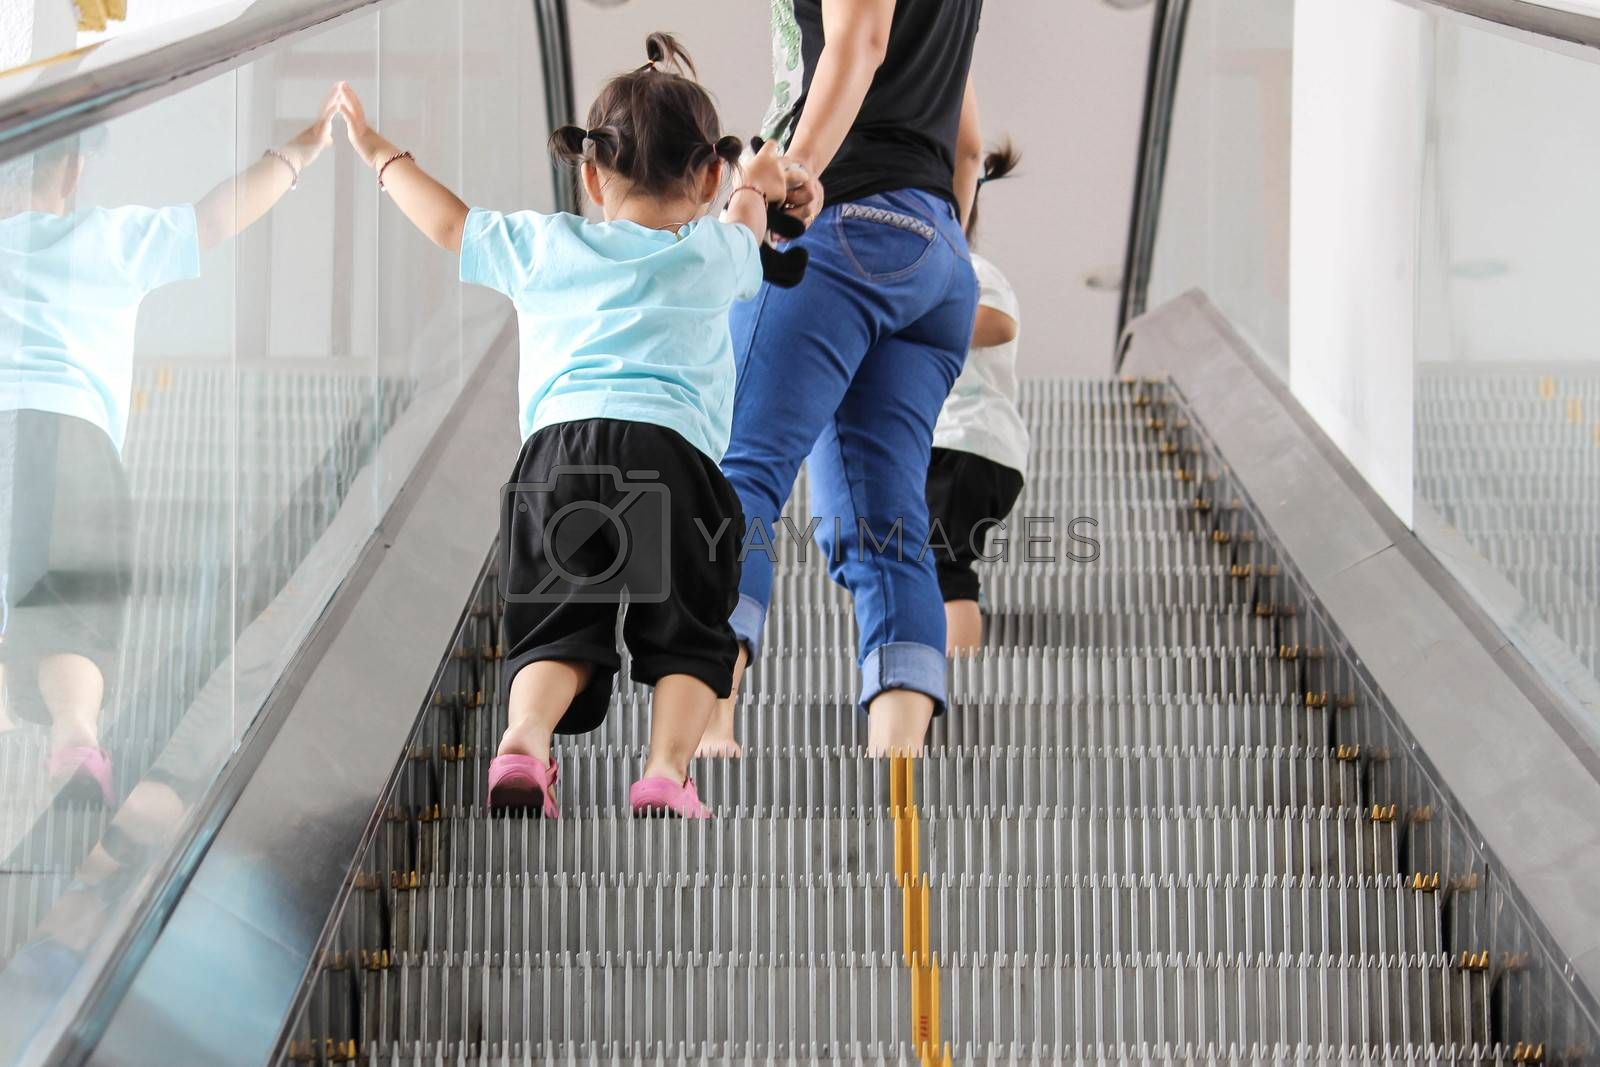 Back view of mother and child walking up together on broken escalator background. by TEERASAK